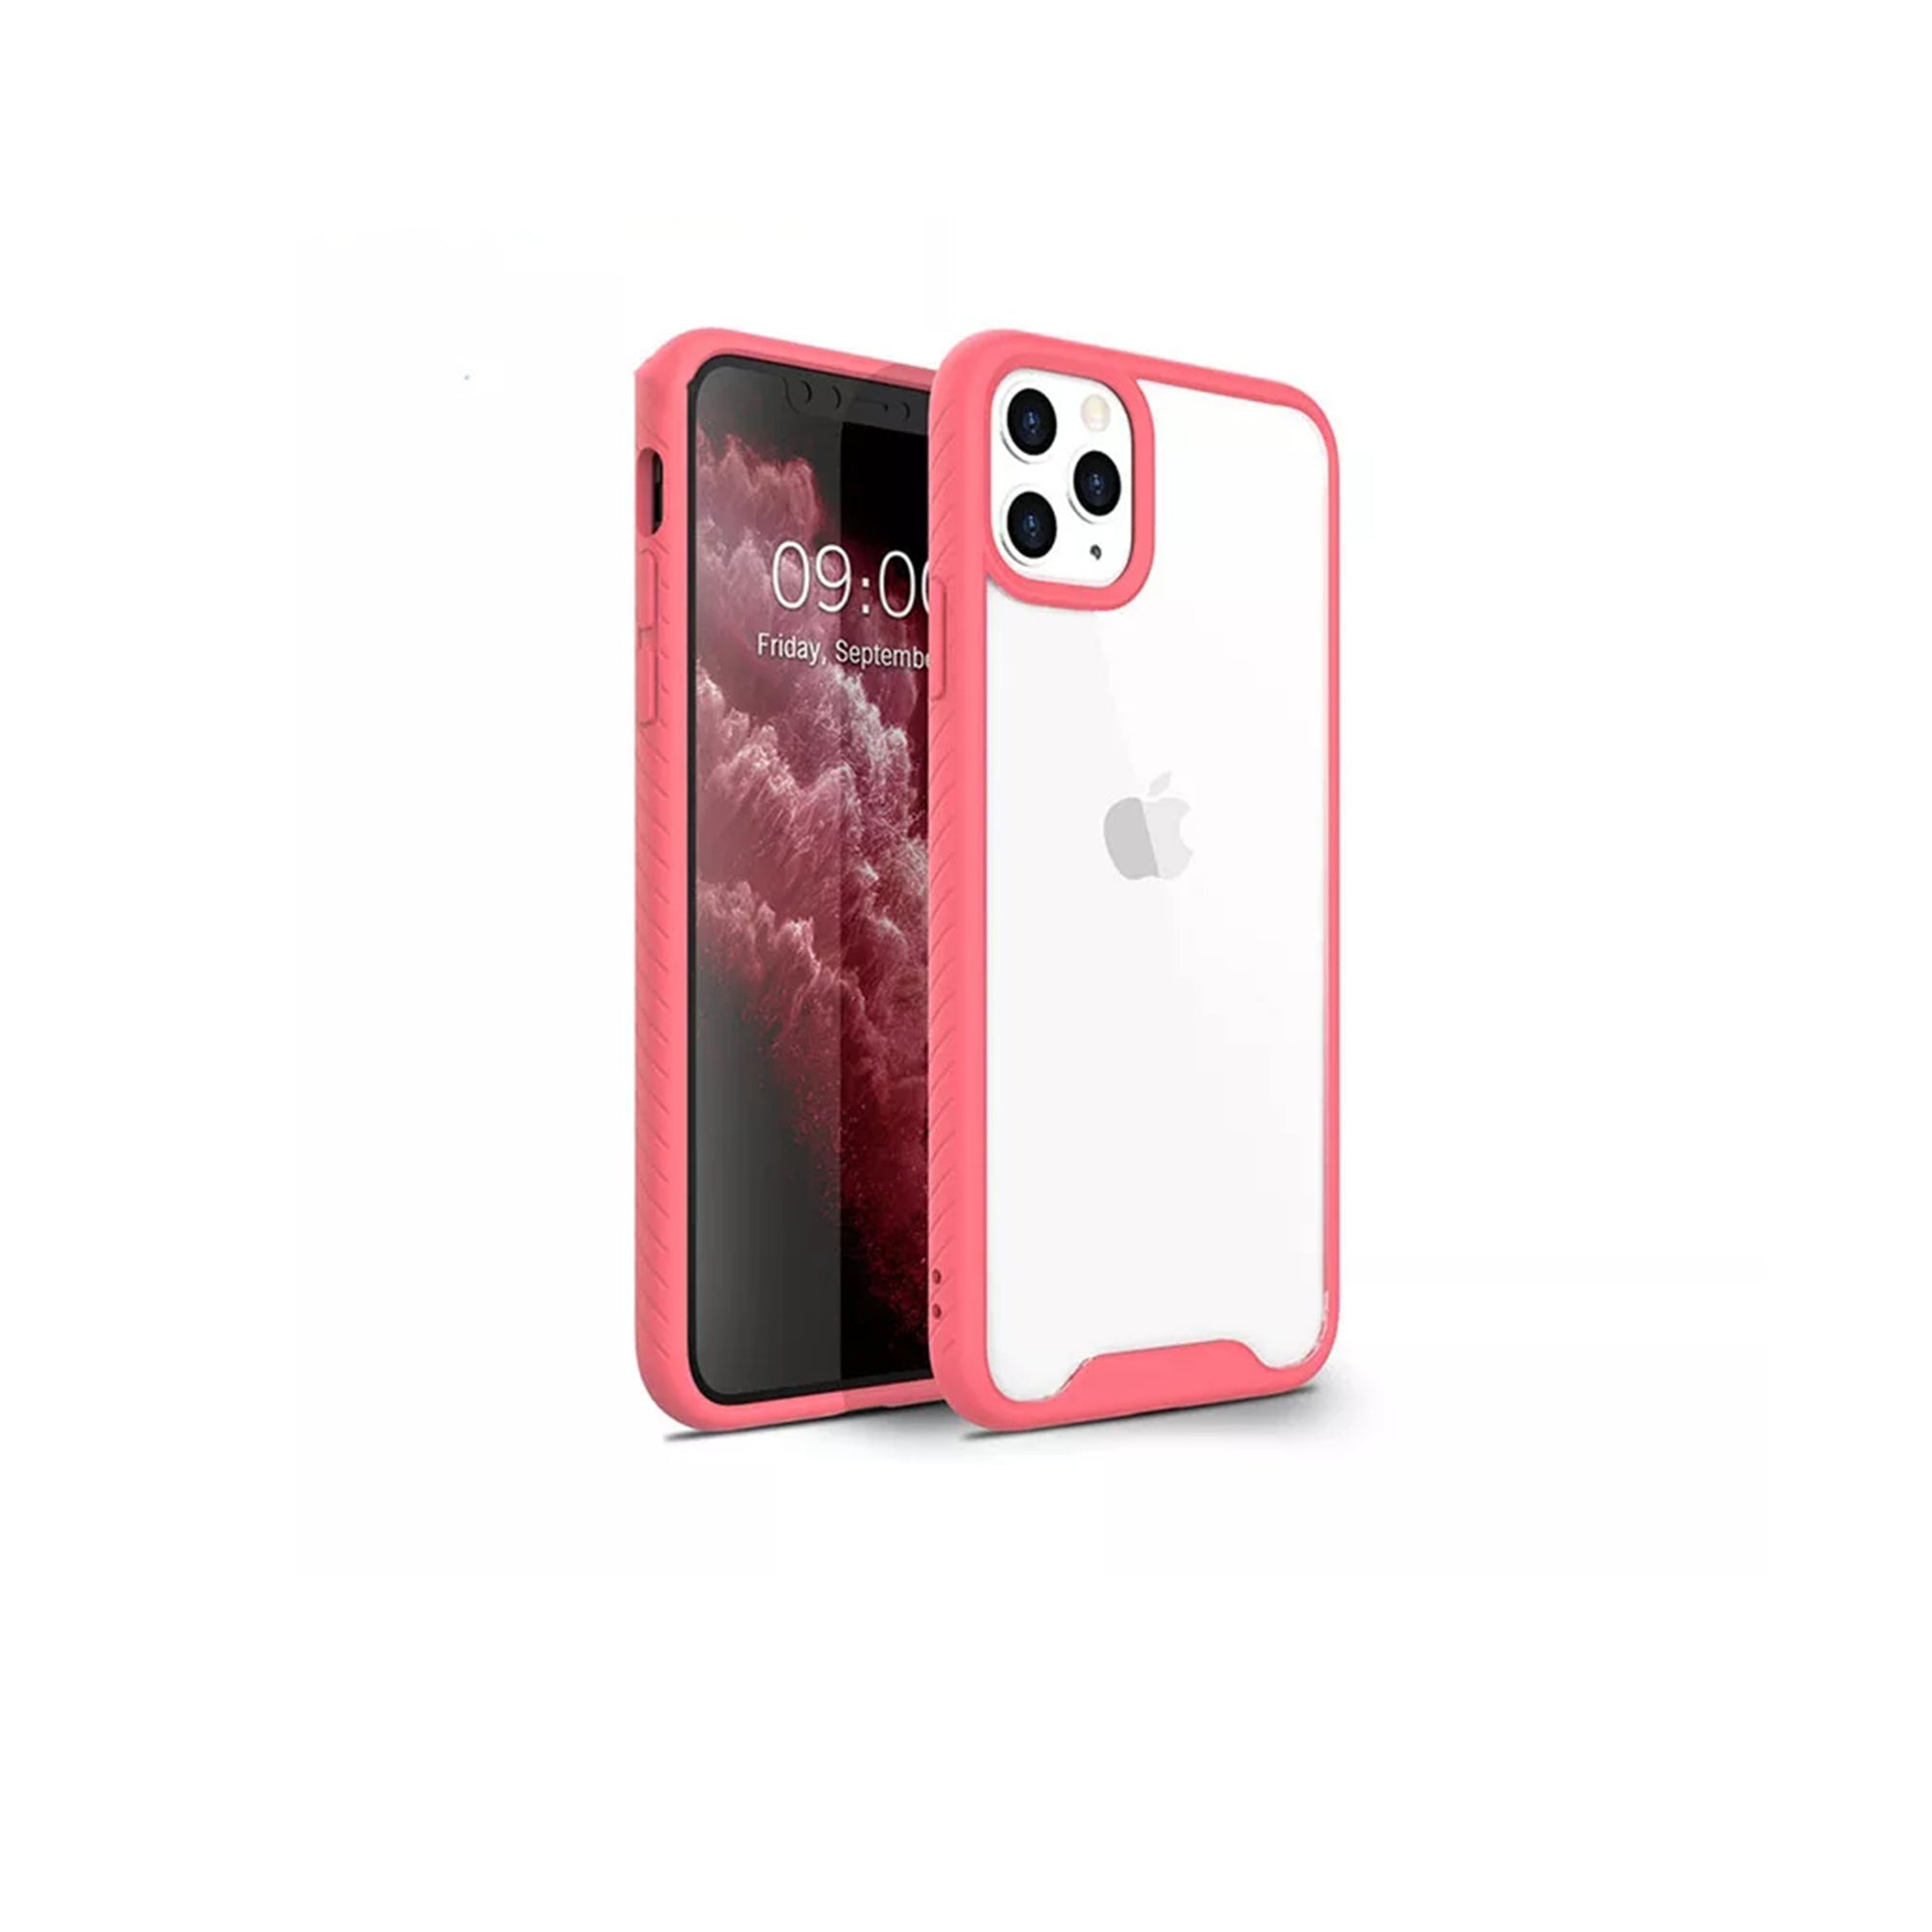 Sportlink iPhone 11 Pro Max Case